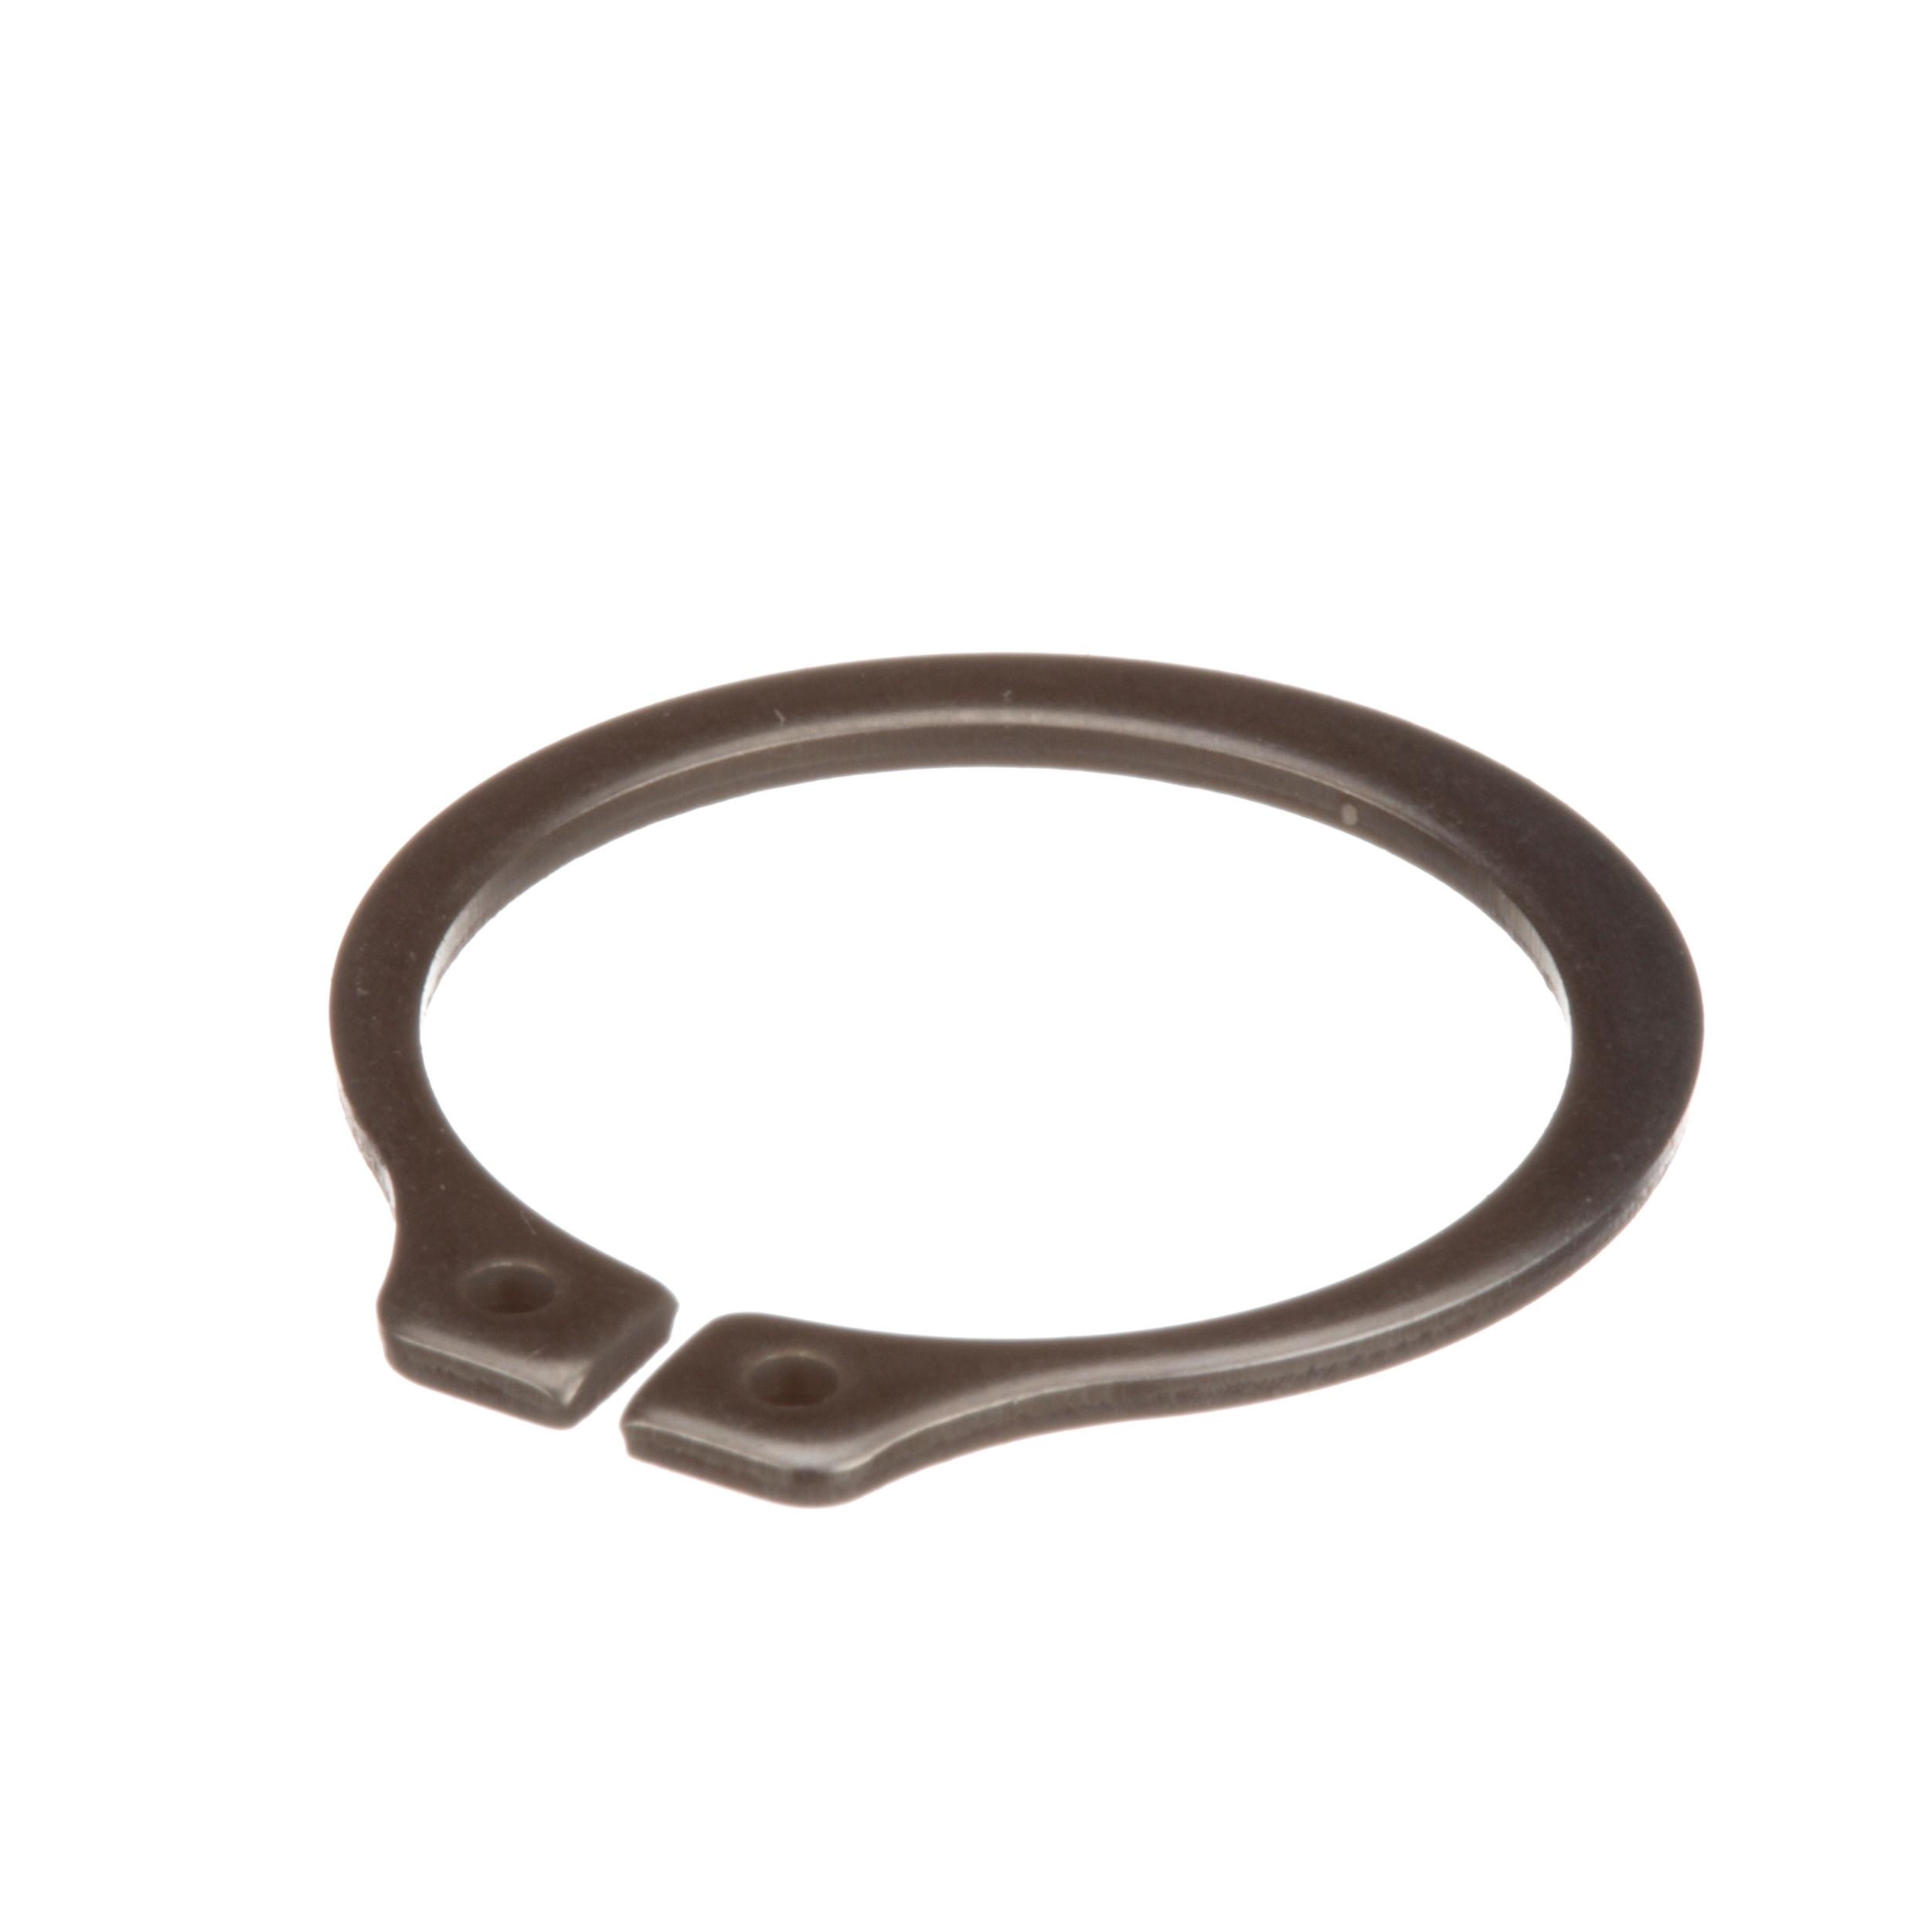 CLEVELAND RING;RETAINING;EXTERNAL WALDES #5100-75-